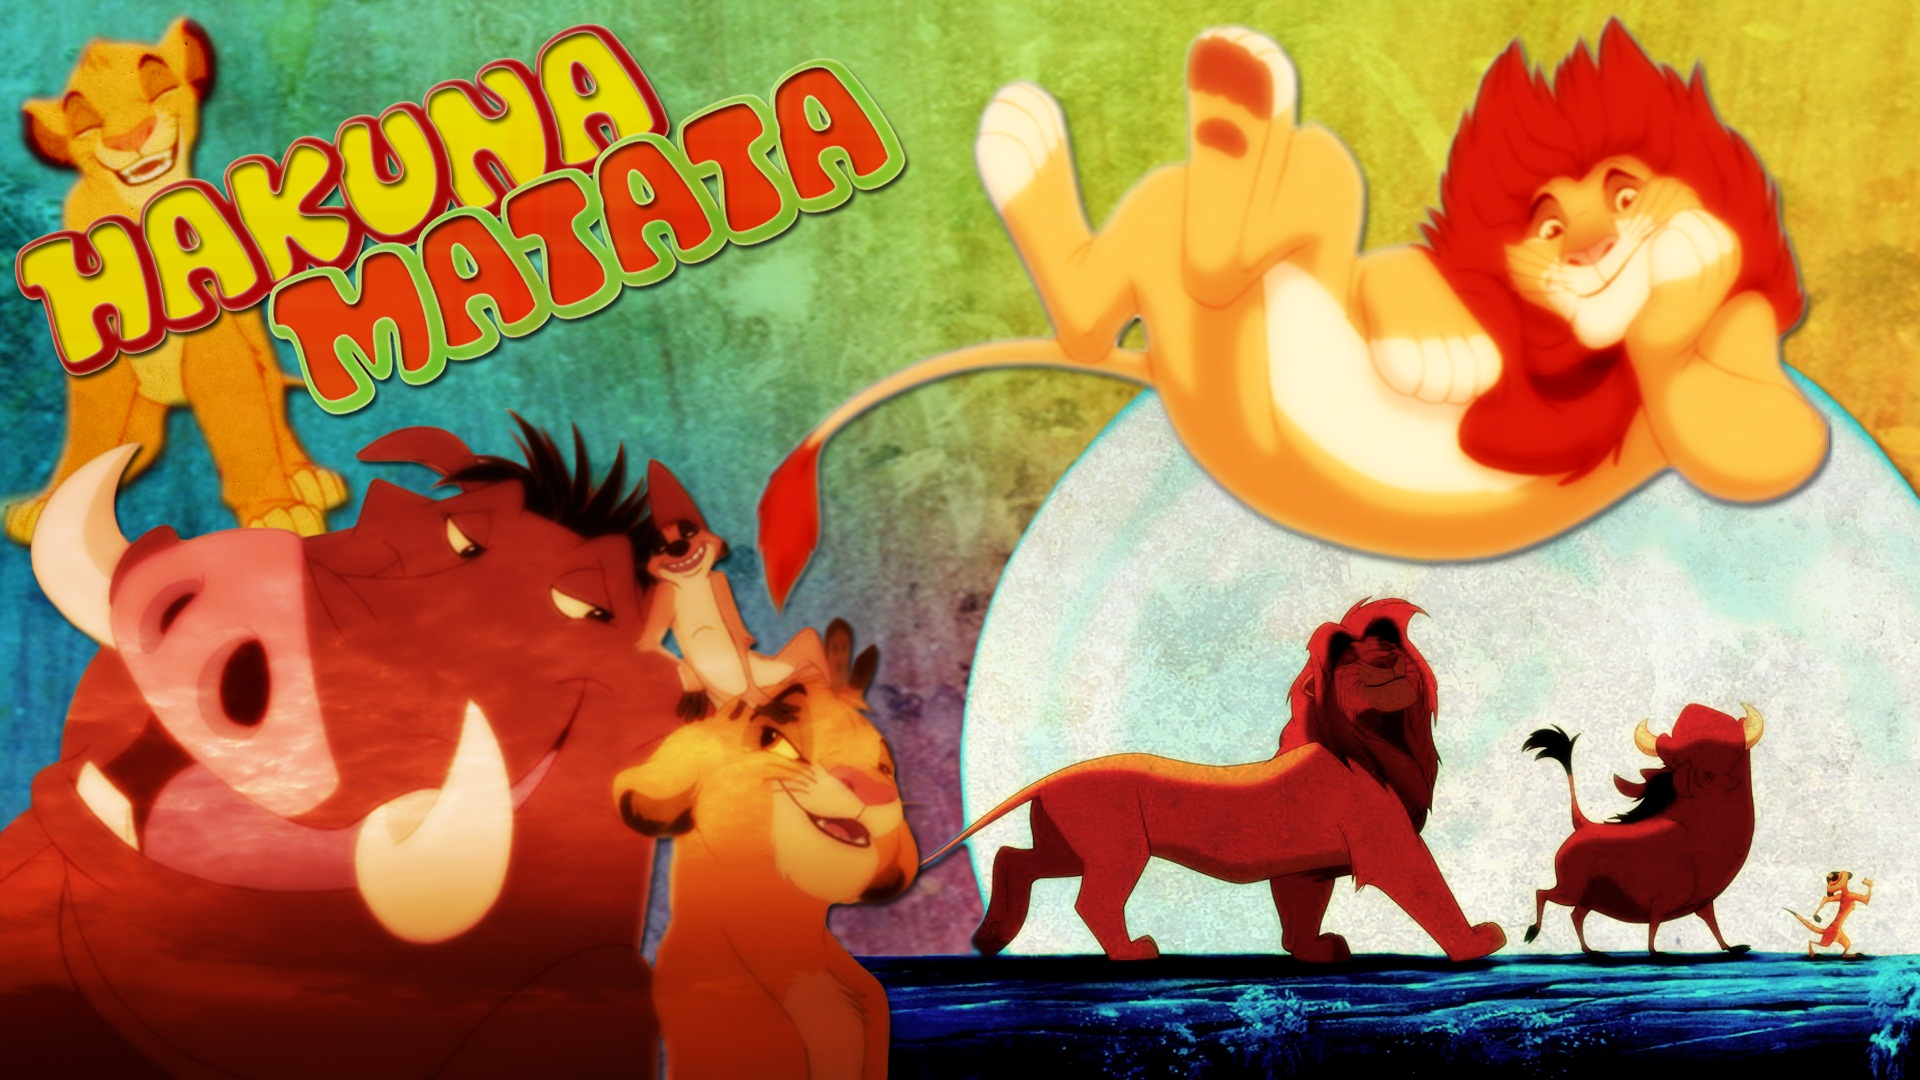 Hakuna Matata the lionking   Movies TV Shows Wallpaper 28234521 1920x1080